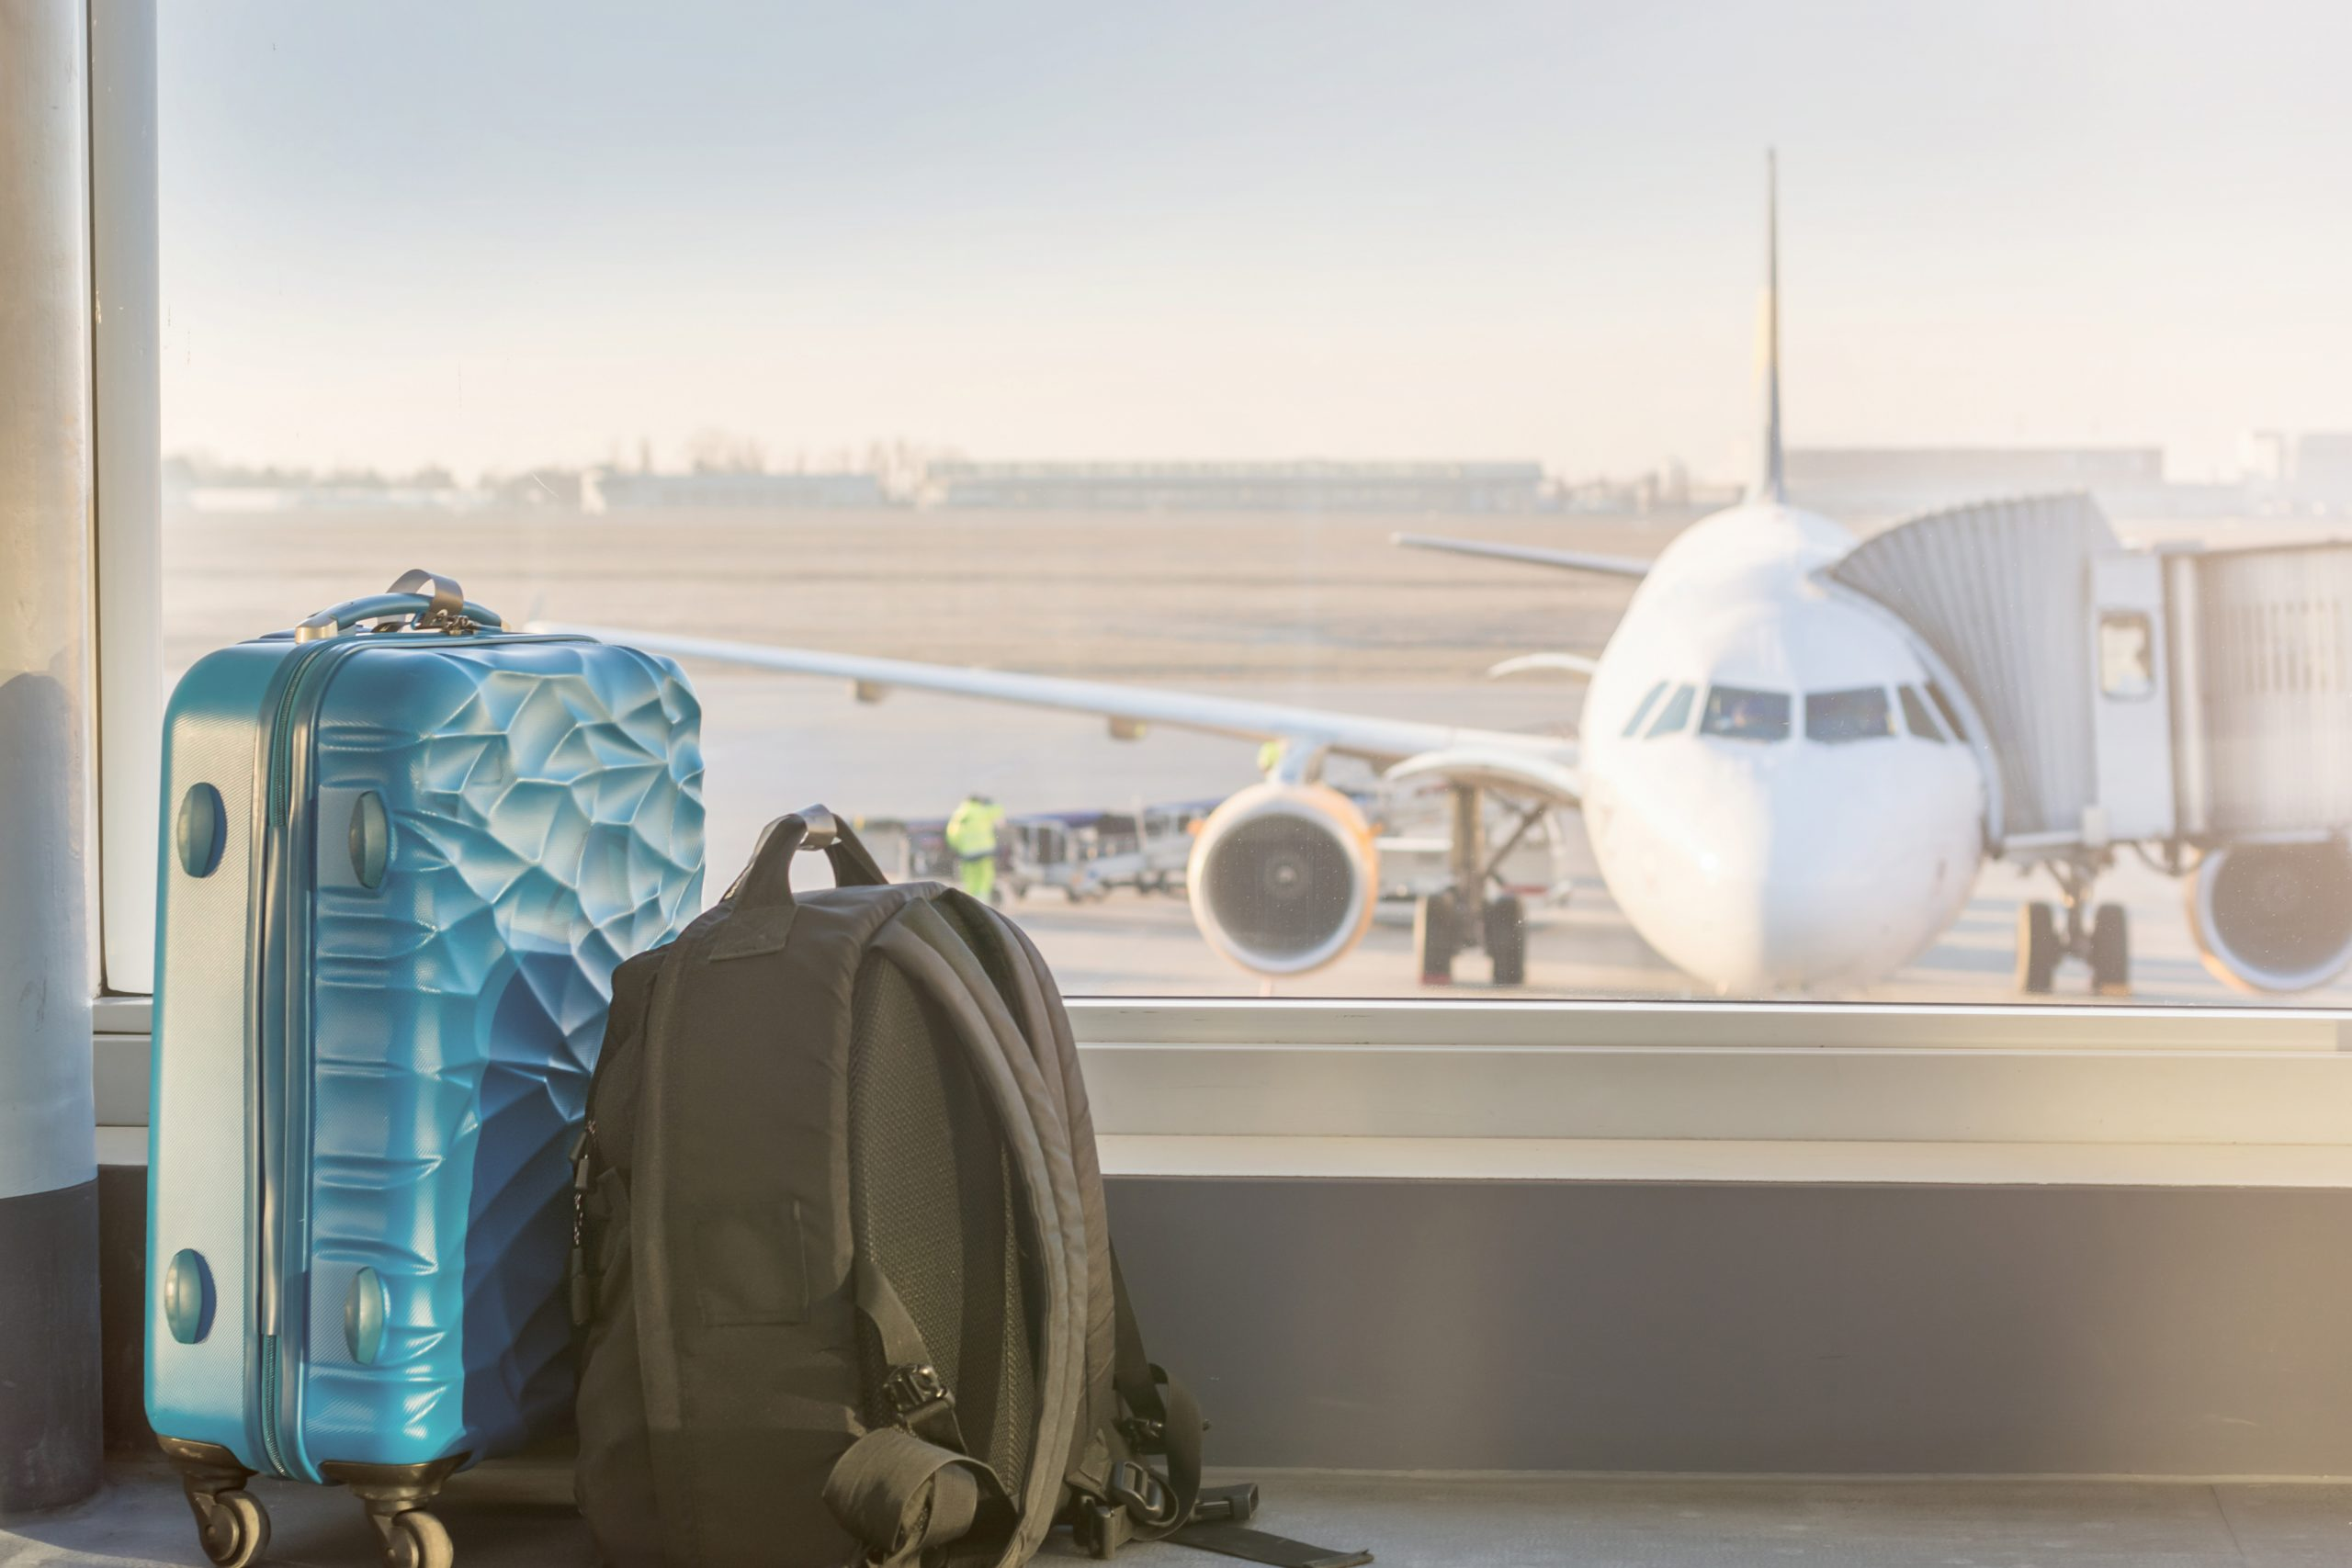 New rules for business travellers now apply to those travelling abroad for business purposes. The rules came into effect from 1 January 2021, but Covid may have kept you grounded until now.